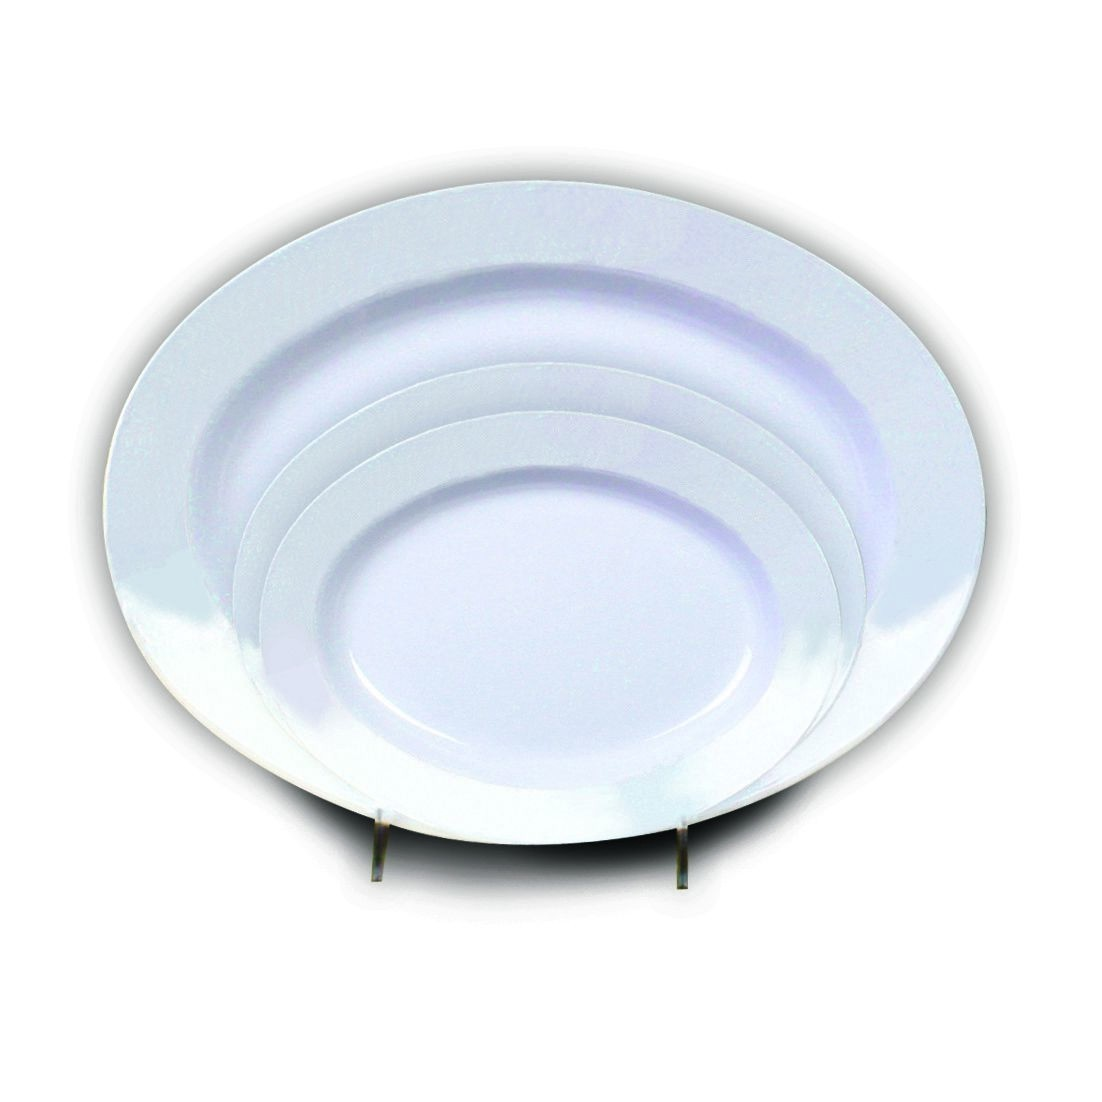 "Thunder Group 2110TW Imperial Oval Shaped Deep Platter 10"" x 7-1/2"""